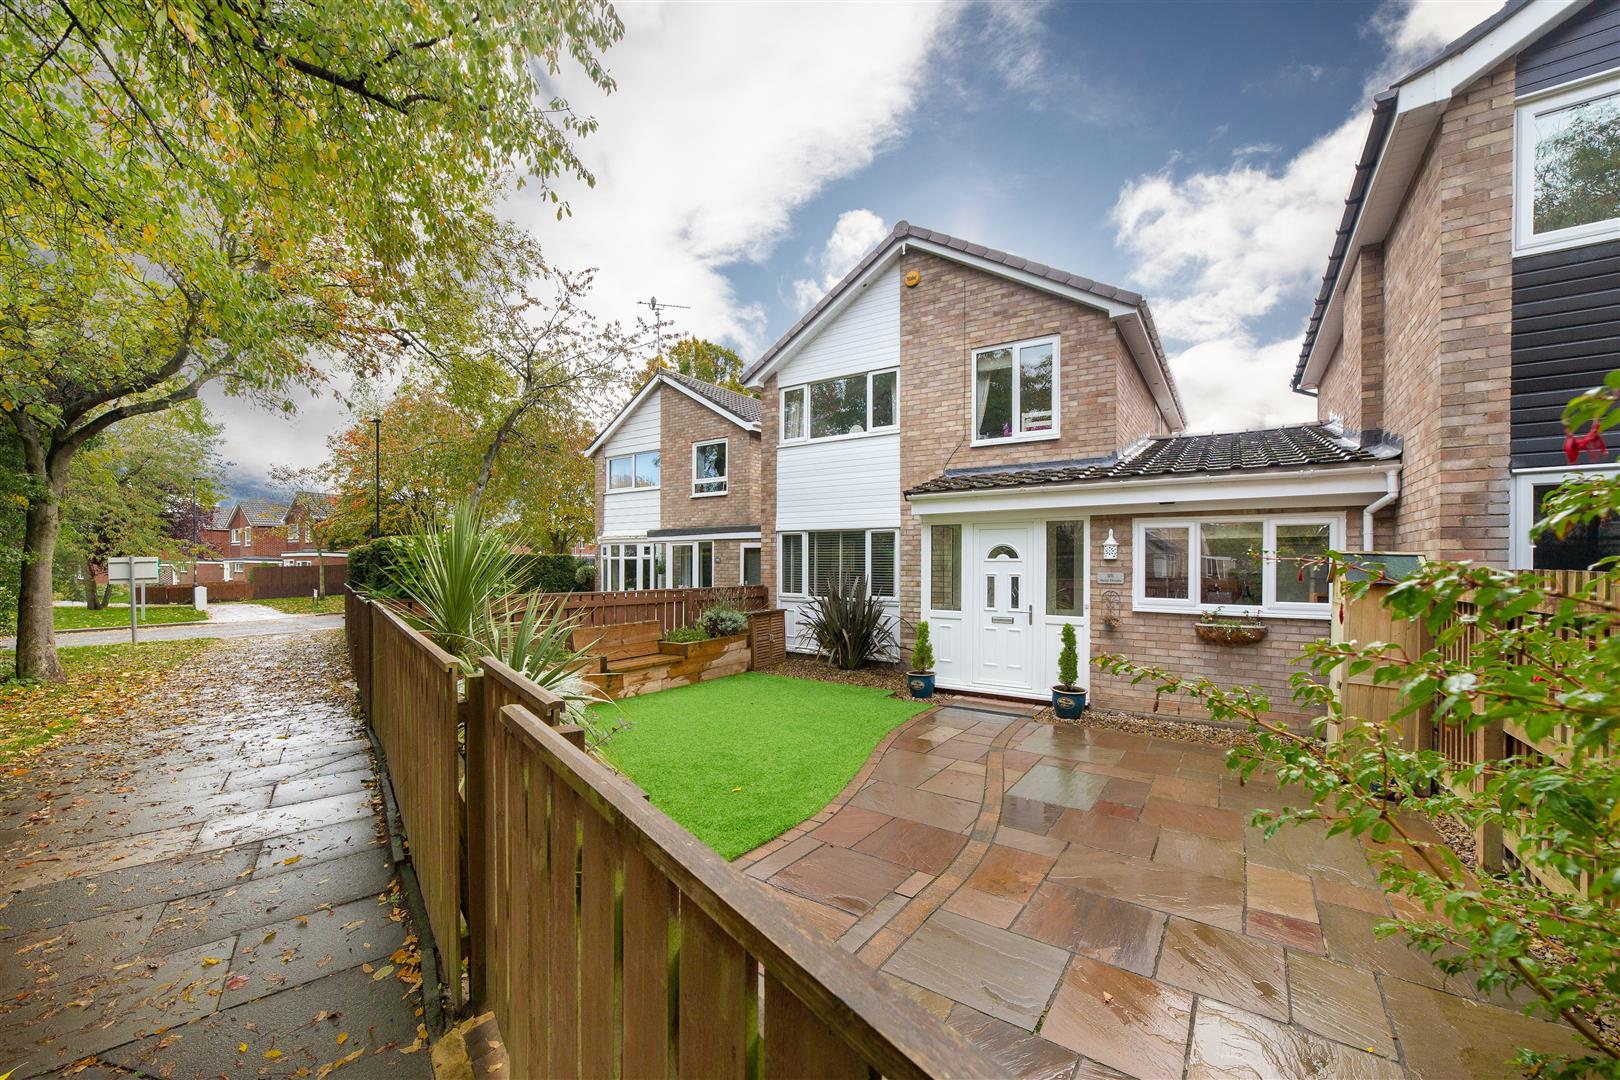 3 bed detached house for sale in Newcastle Upon Tyne, NE3 2XA, NE3